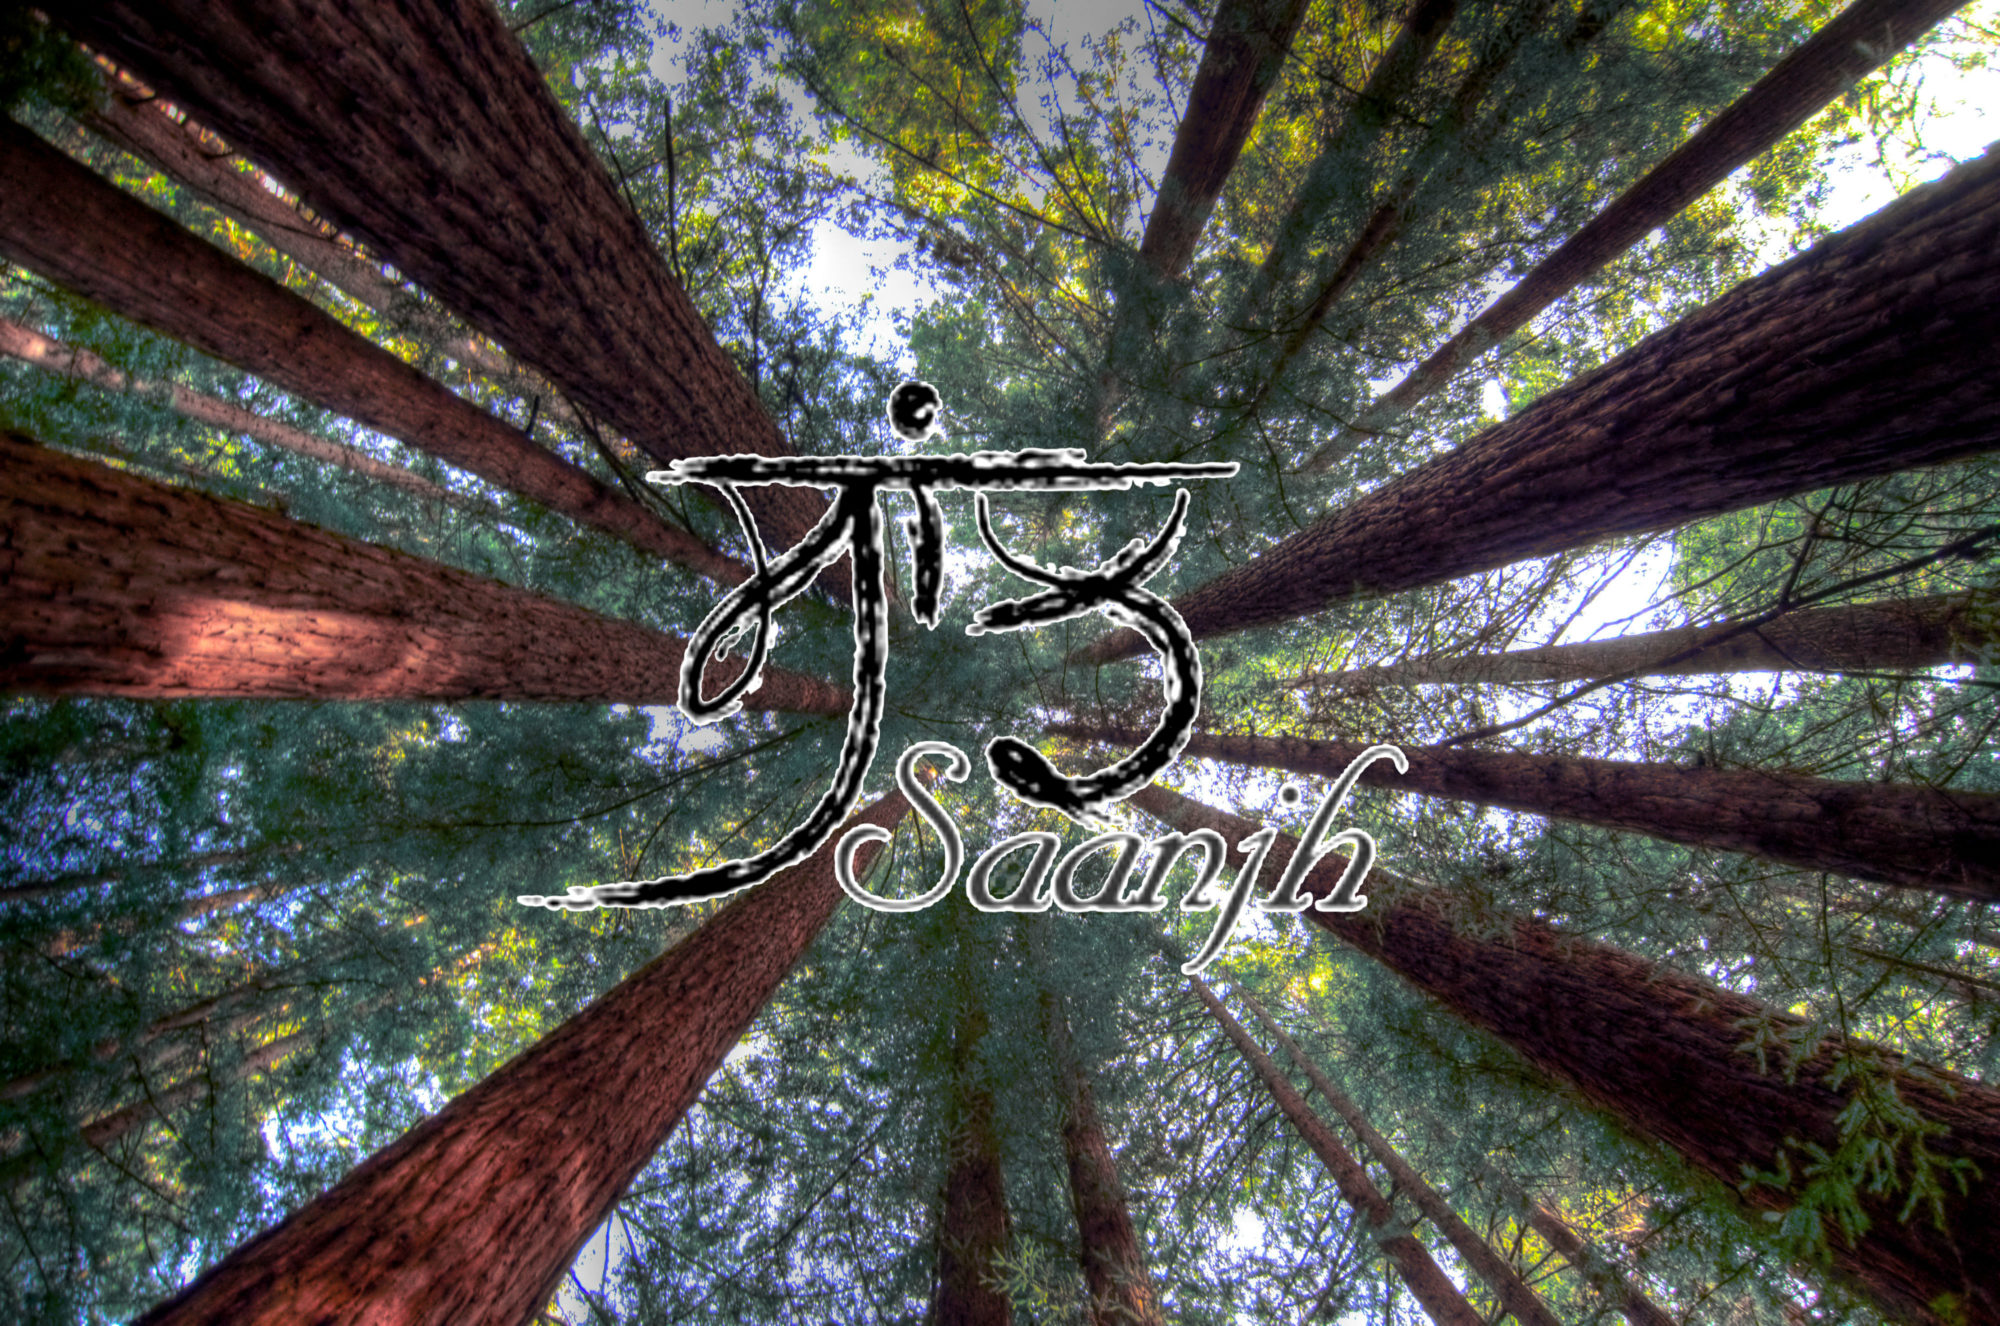 Sikhi in the Redwoods